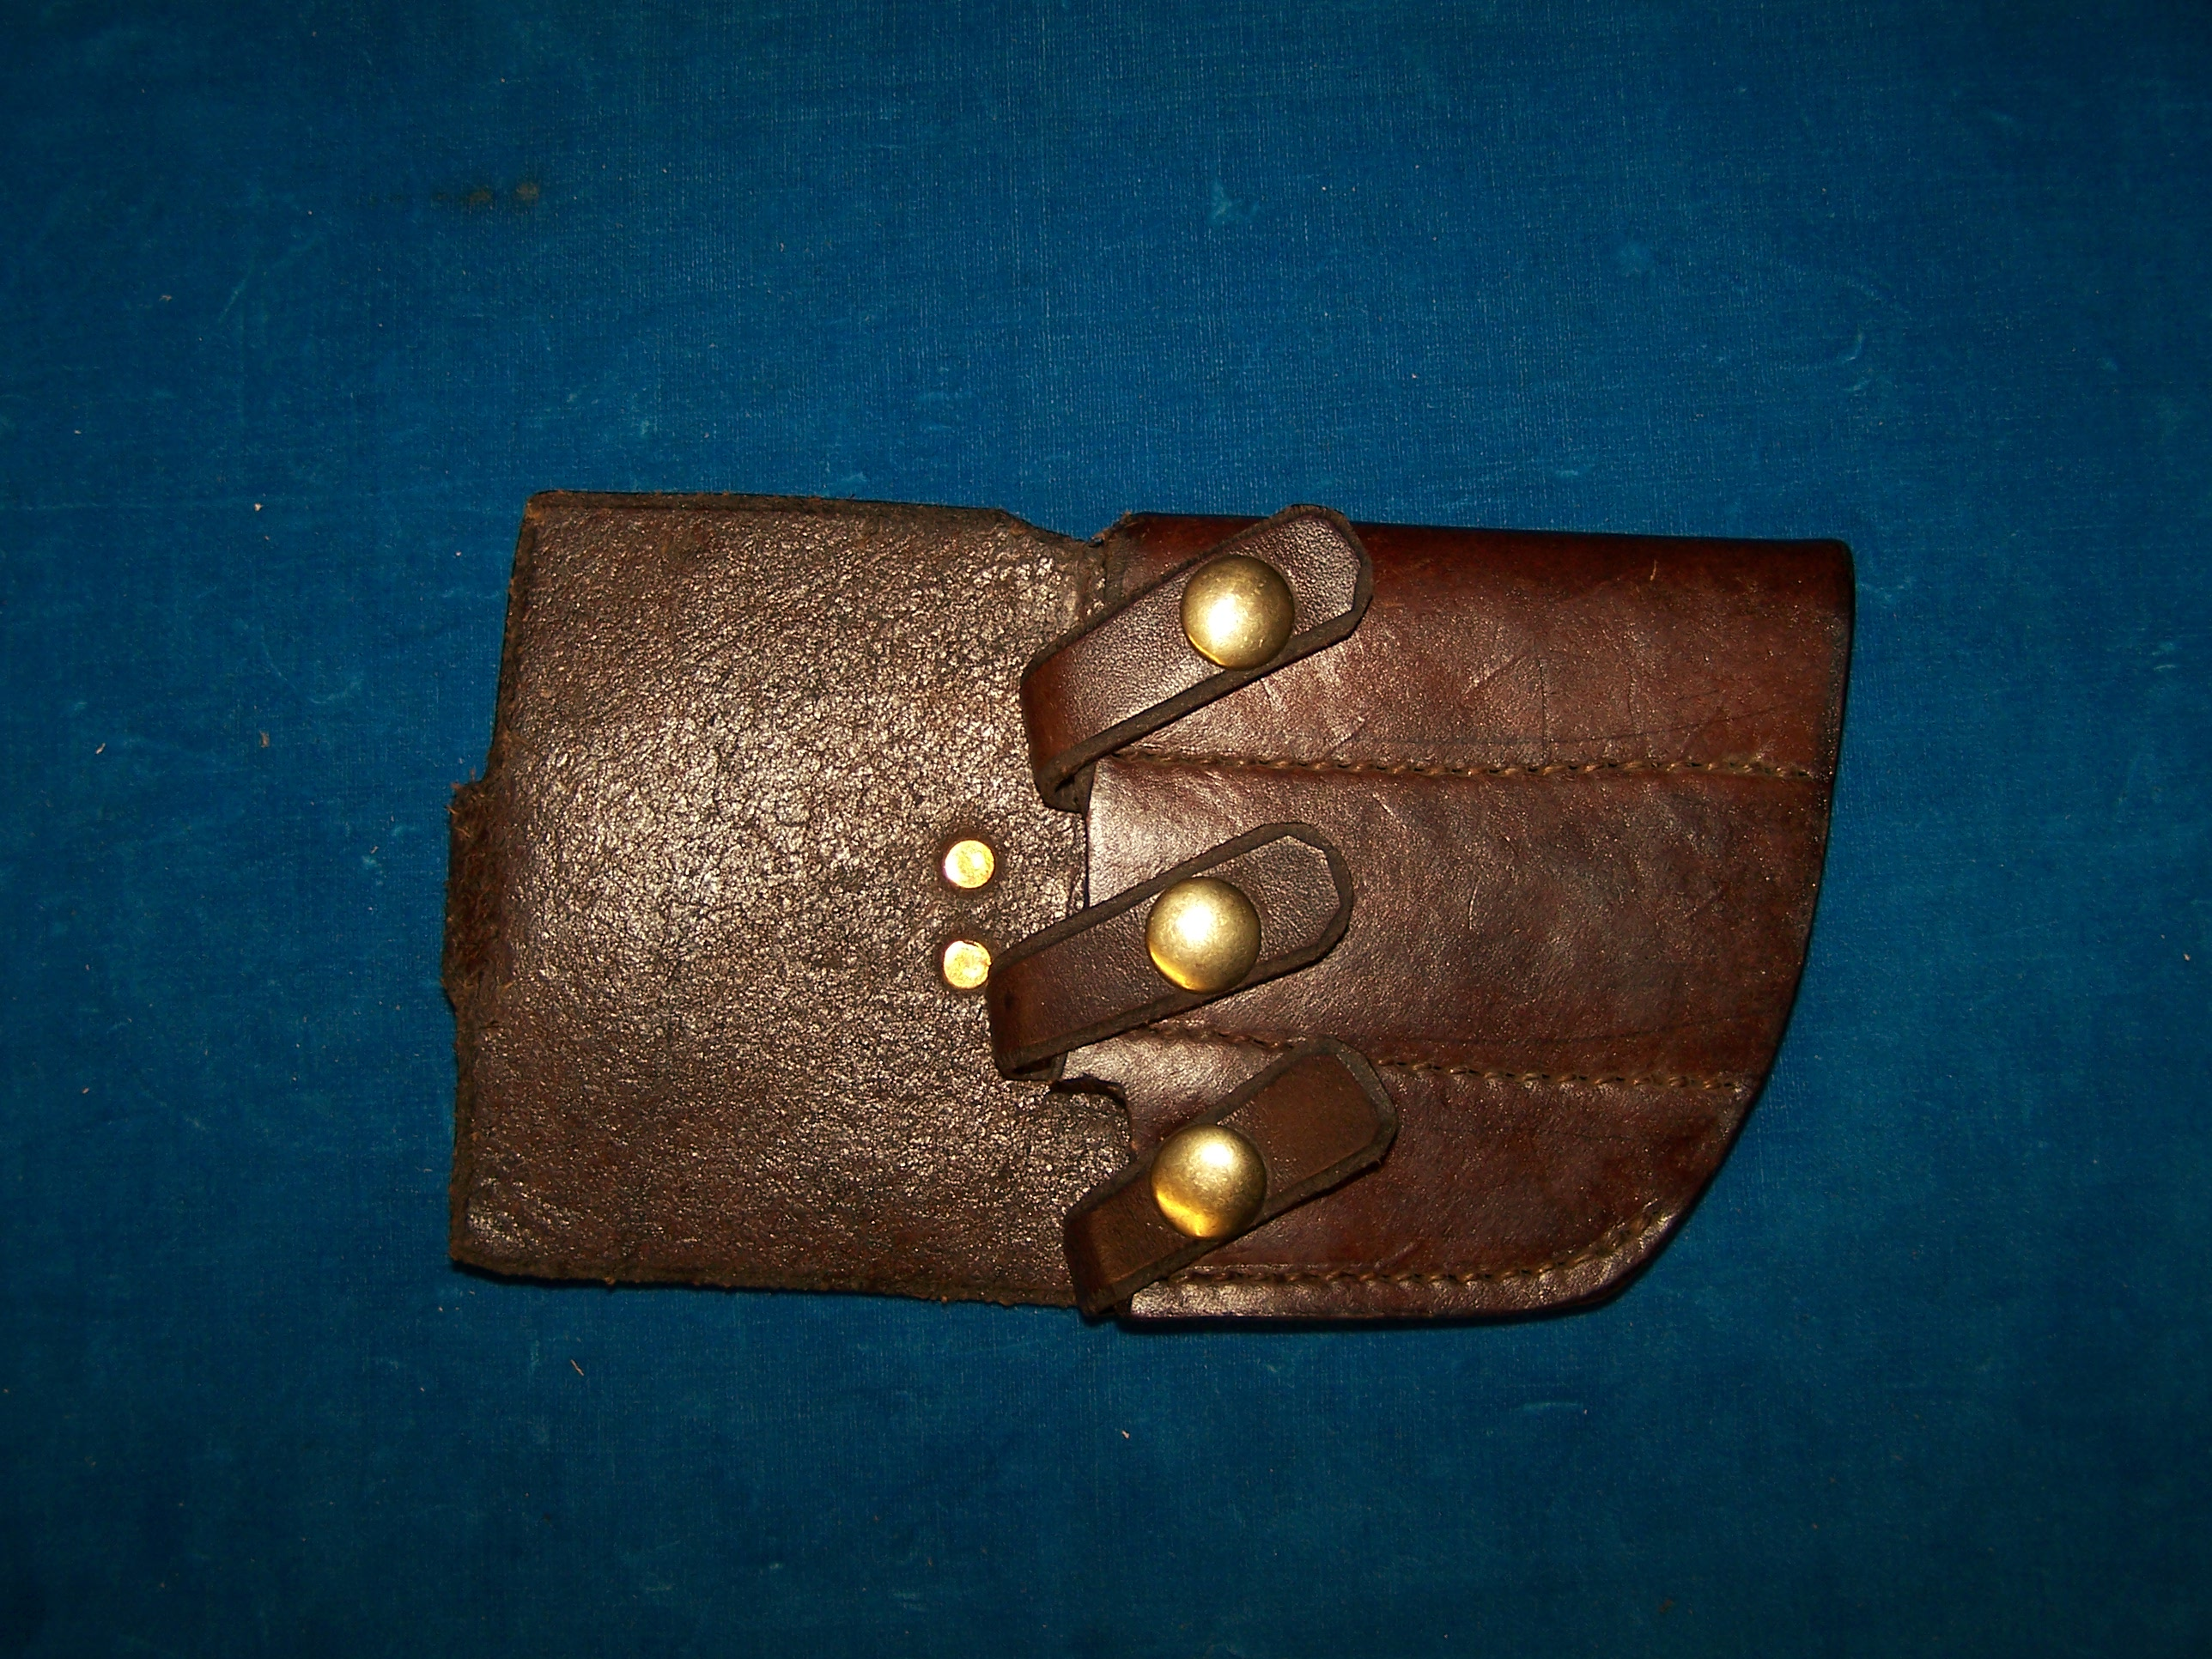 Custom 3-knife sheath